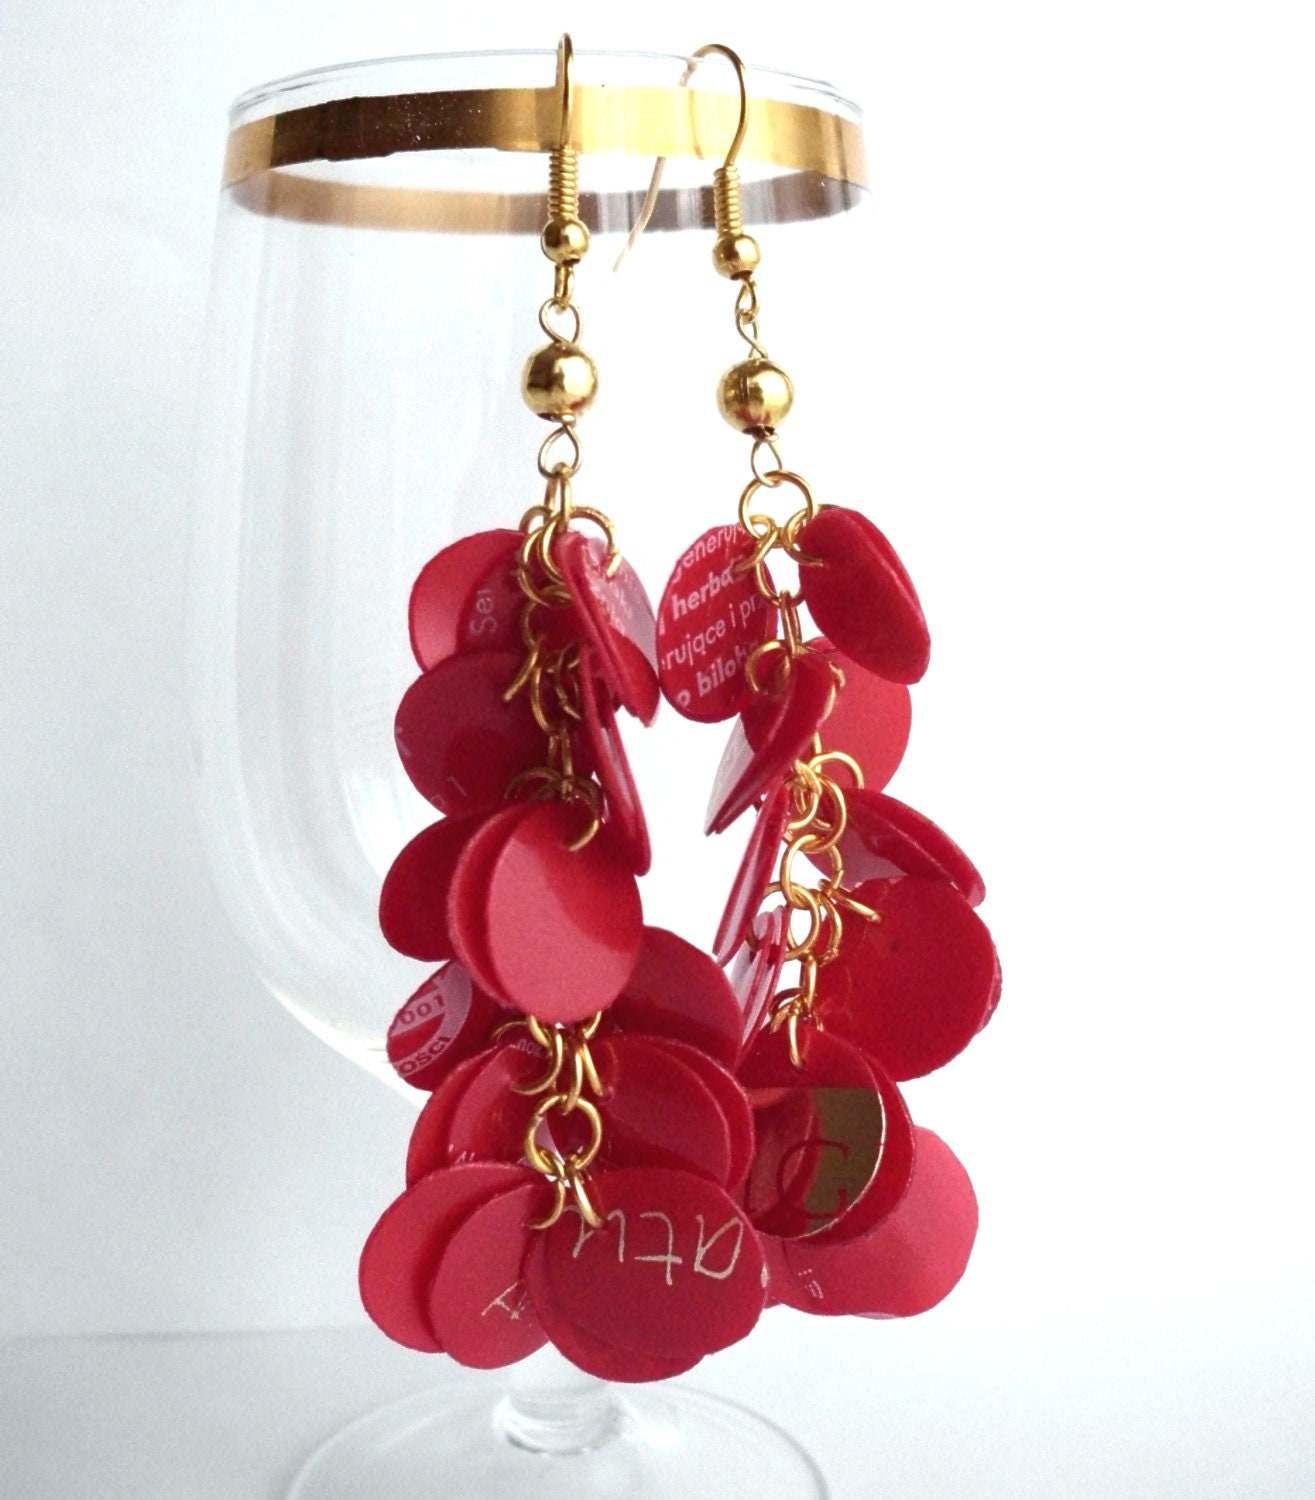 Red & gold eco friendly earrings made of recycled plastic - upcycled jewelry, sustainable, gift for christmas, valentine's day - dekoprojects